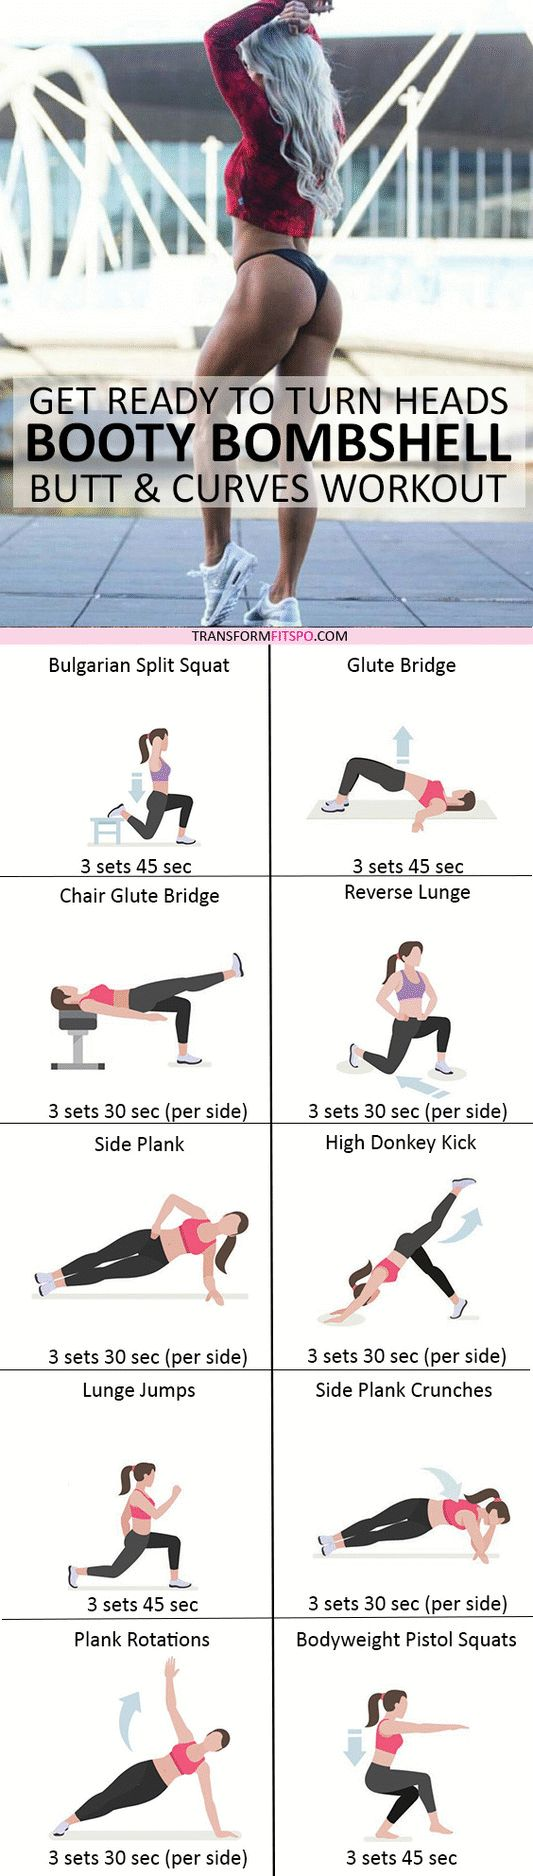 #womensworkout #workout #femalefitness Repin and share if this workout gave you a bombshell booty! Click the pin for the full workout.